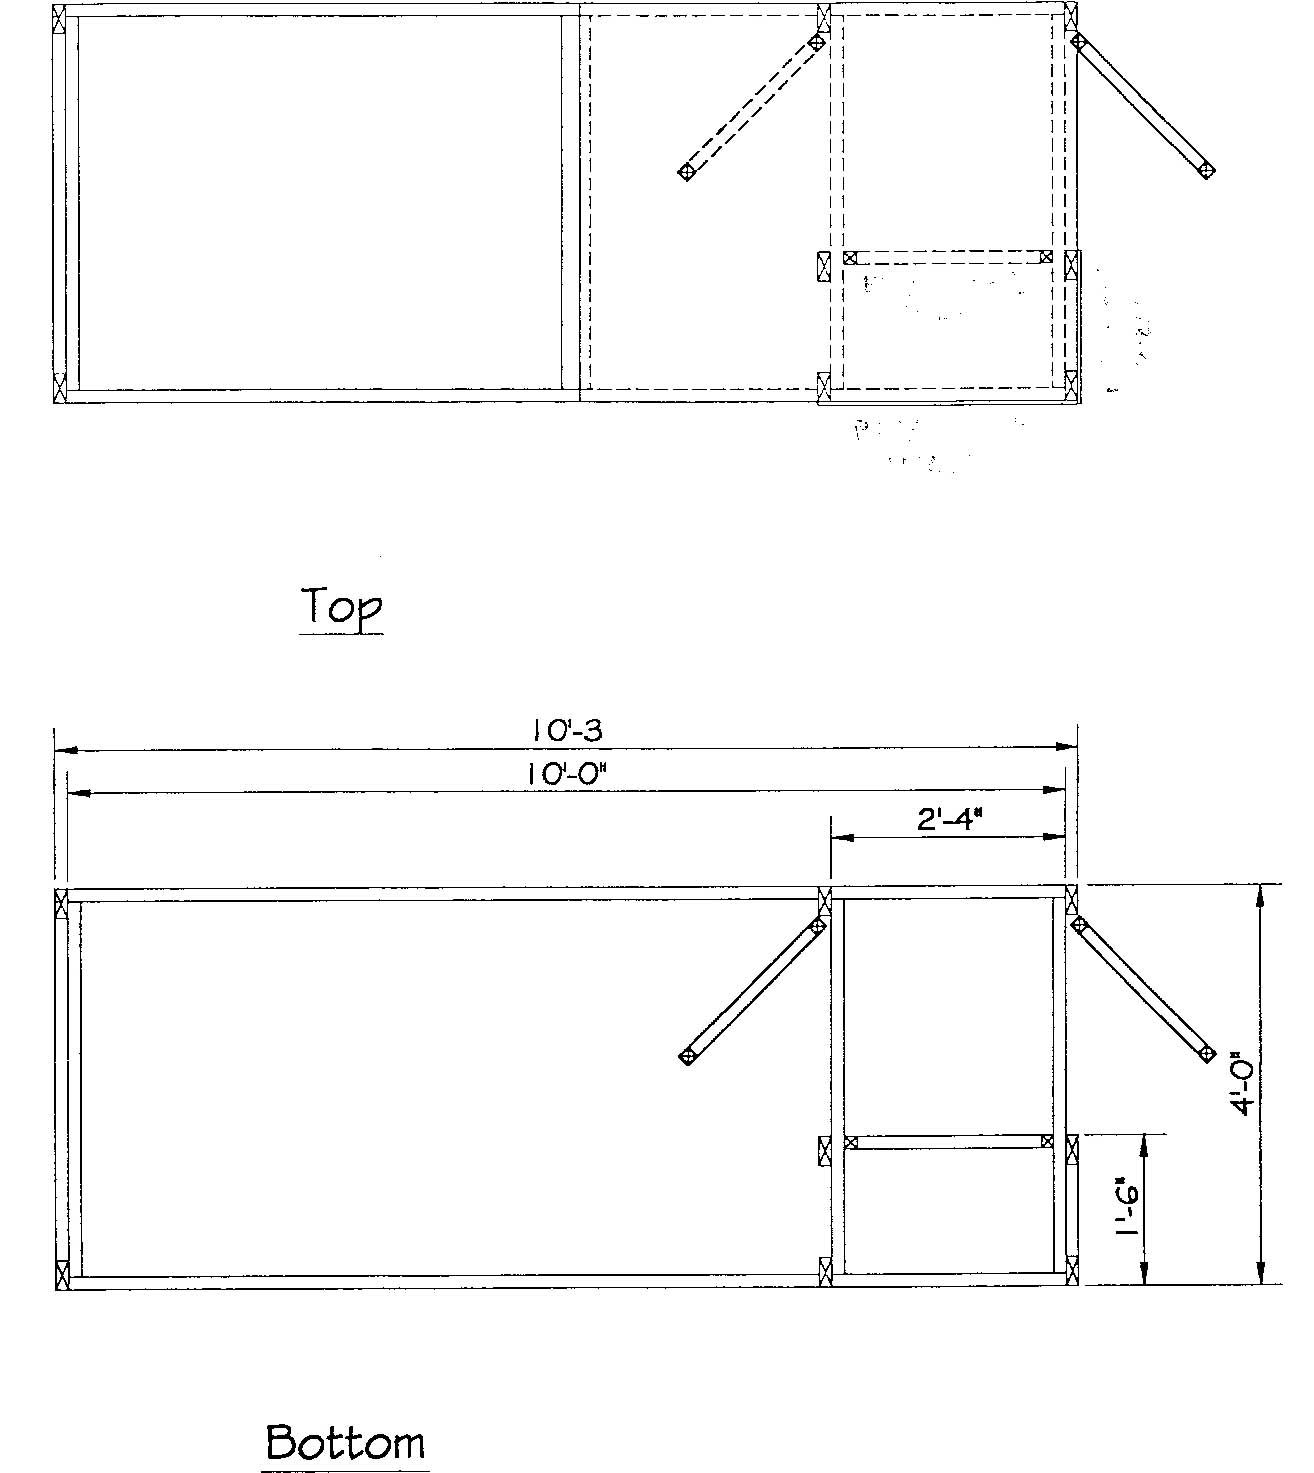 outdoor bird aviary plans | Aviaries and Enclosures | Pinterest ...